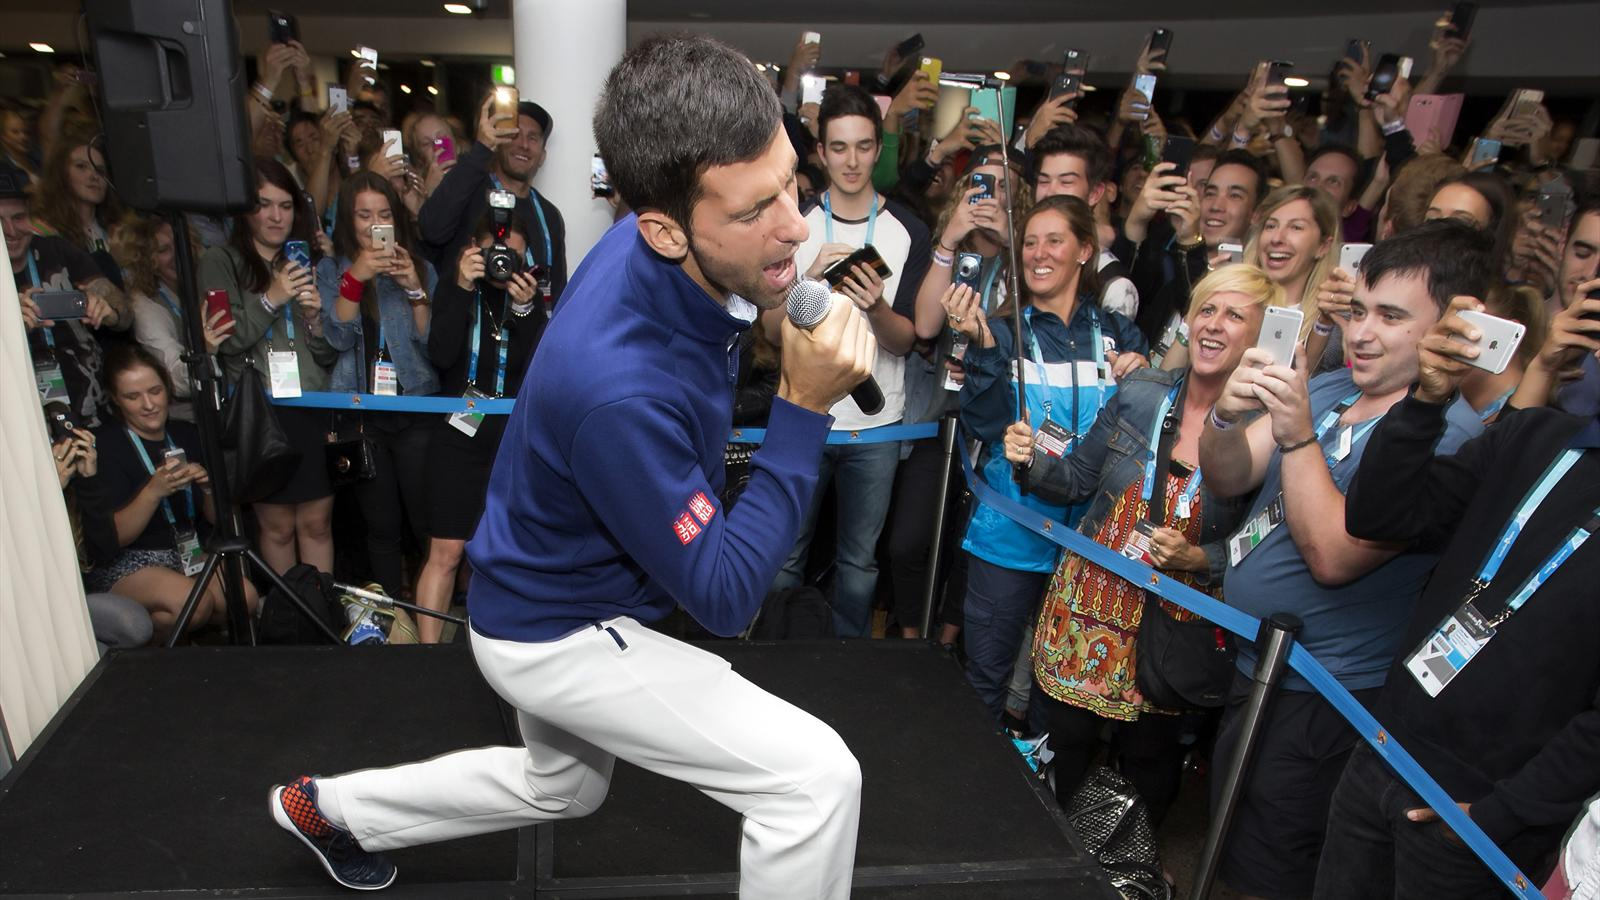 Serbia's Novak Djokovic sings during a party for Melbourne Park staff after winning his final match against Britain's Andy Murray at the Australian Open